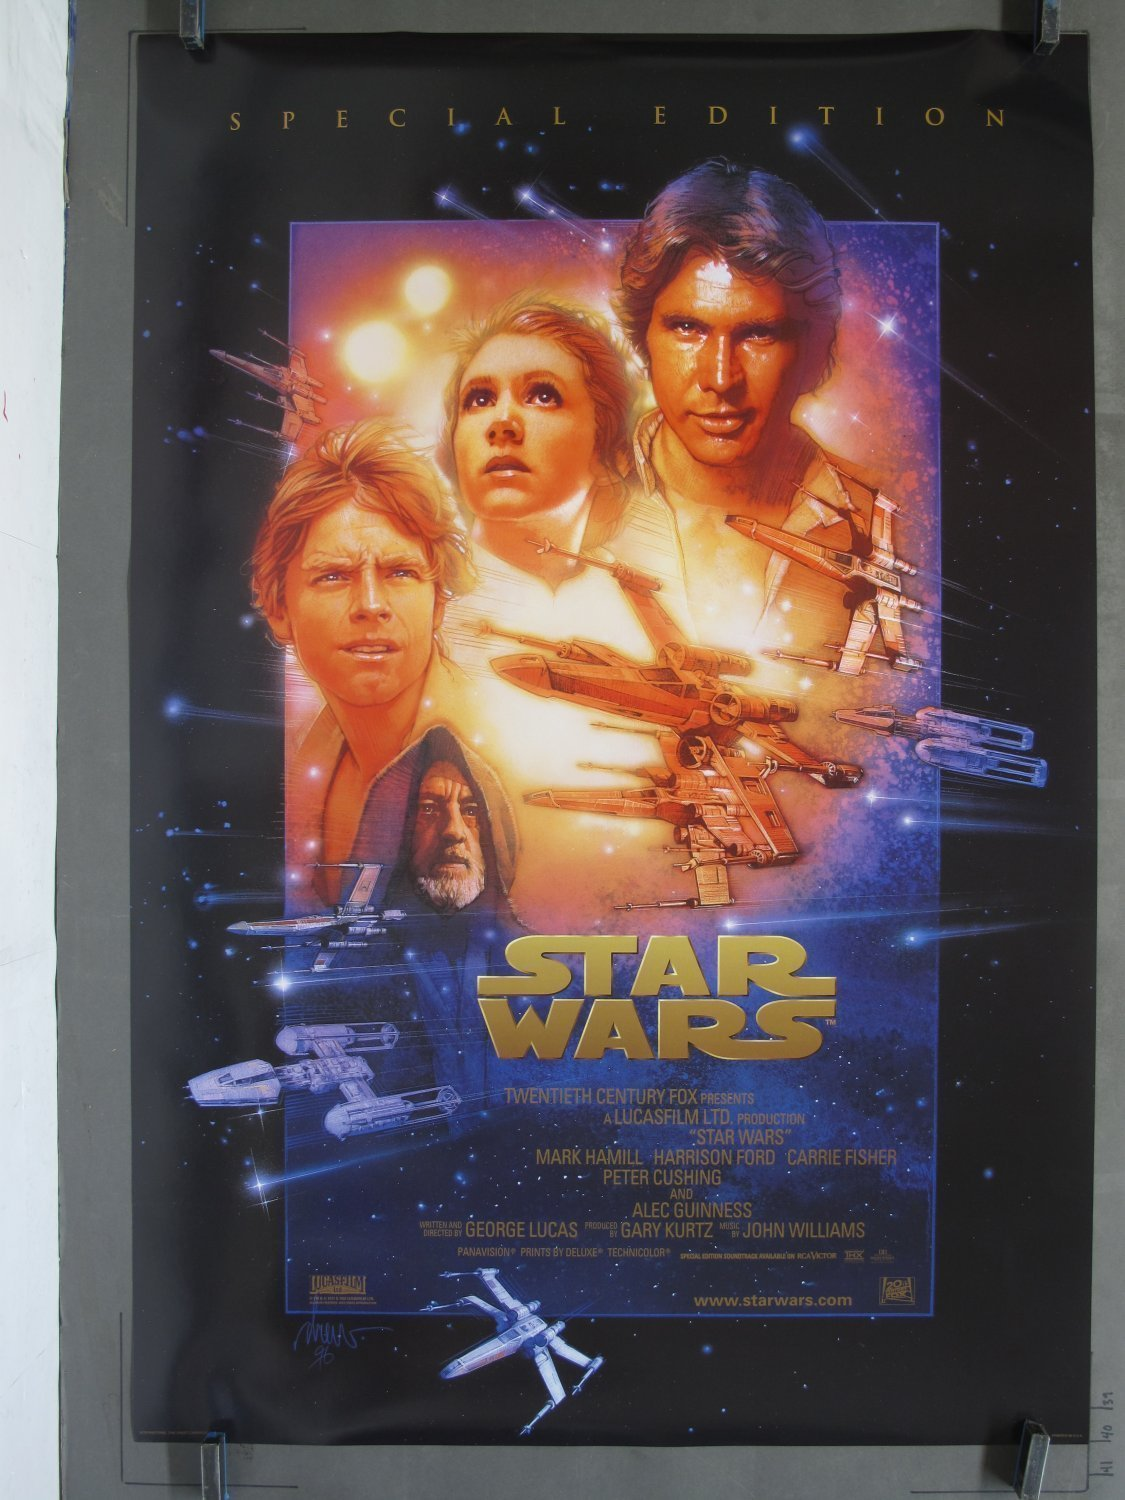 Original star wars movie posters for sale